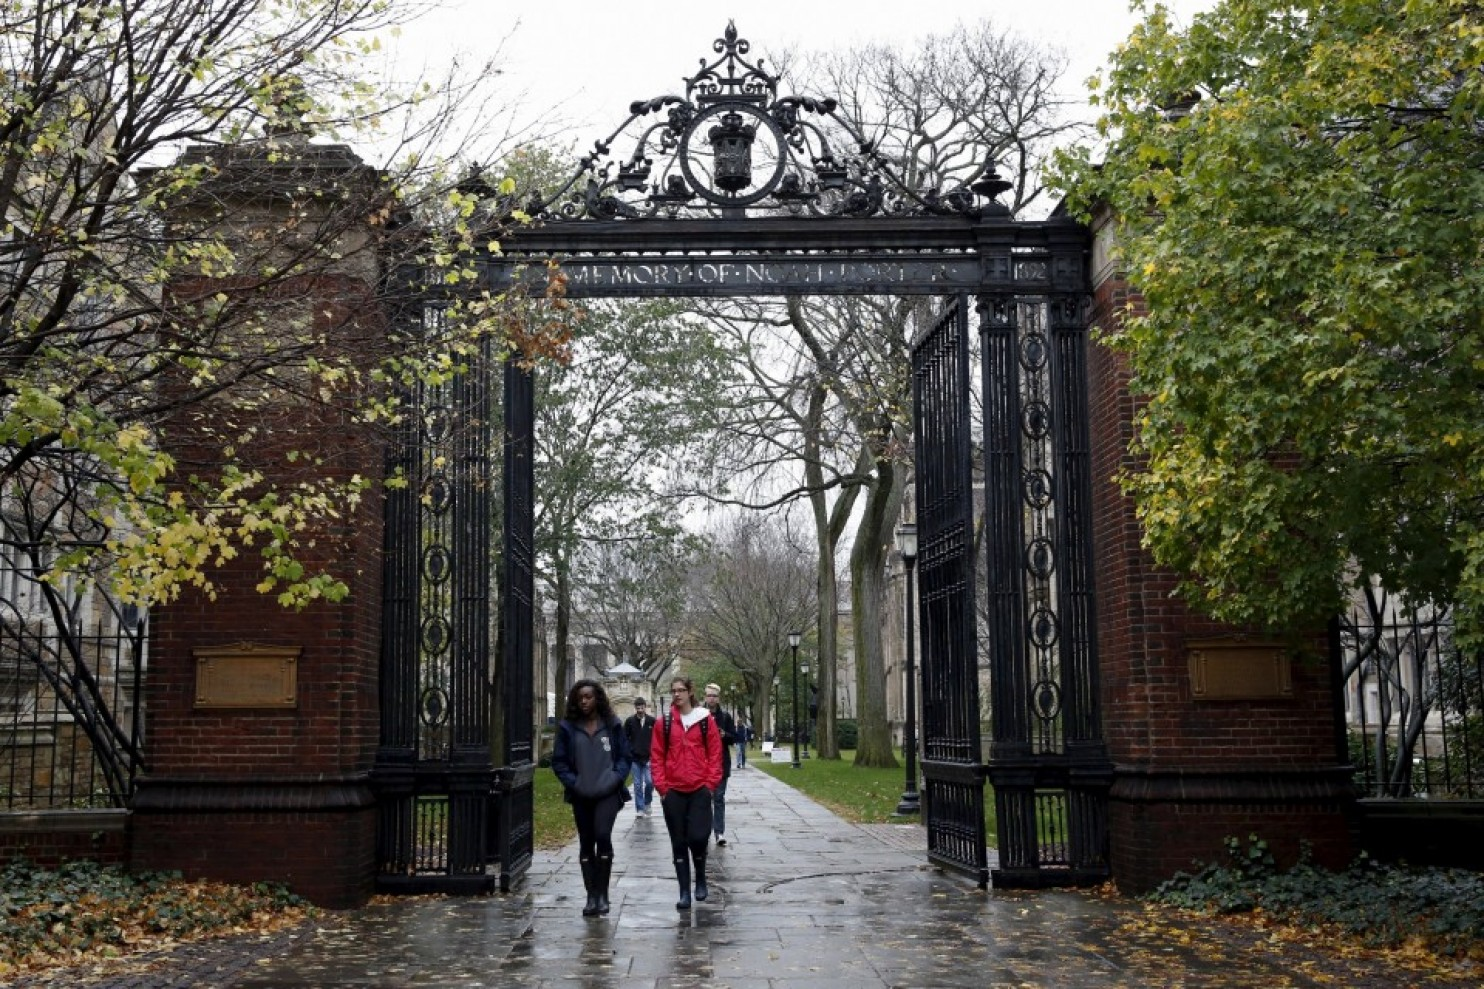 Students walk on the campus of Yale University in New Haven, Connecticut. (Shannon Stapleton/Reuters)